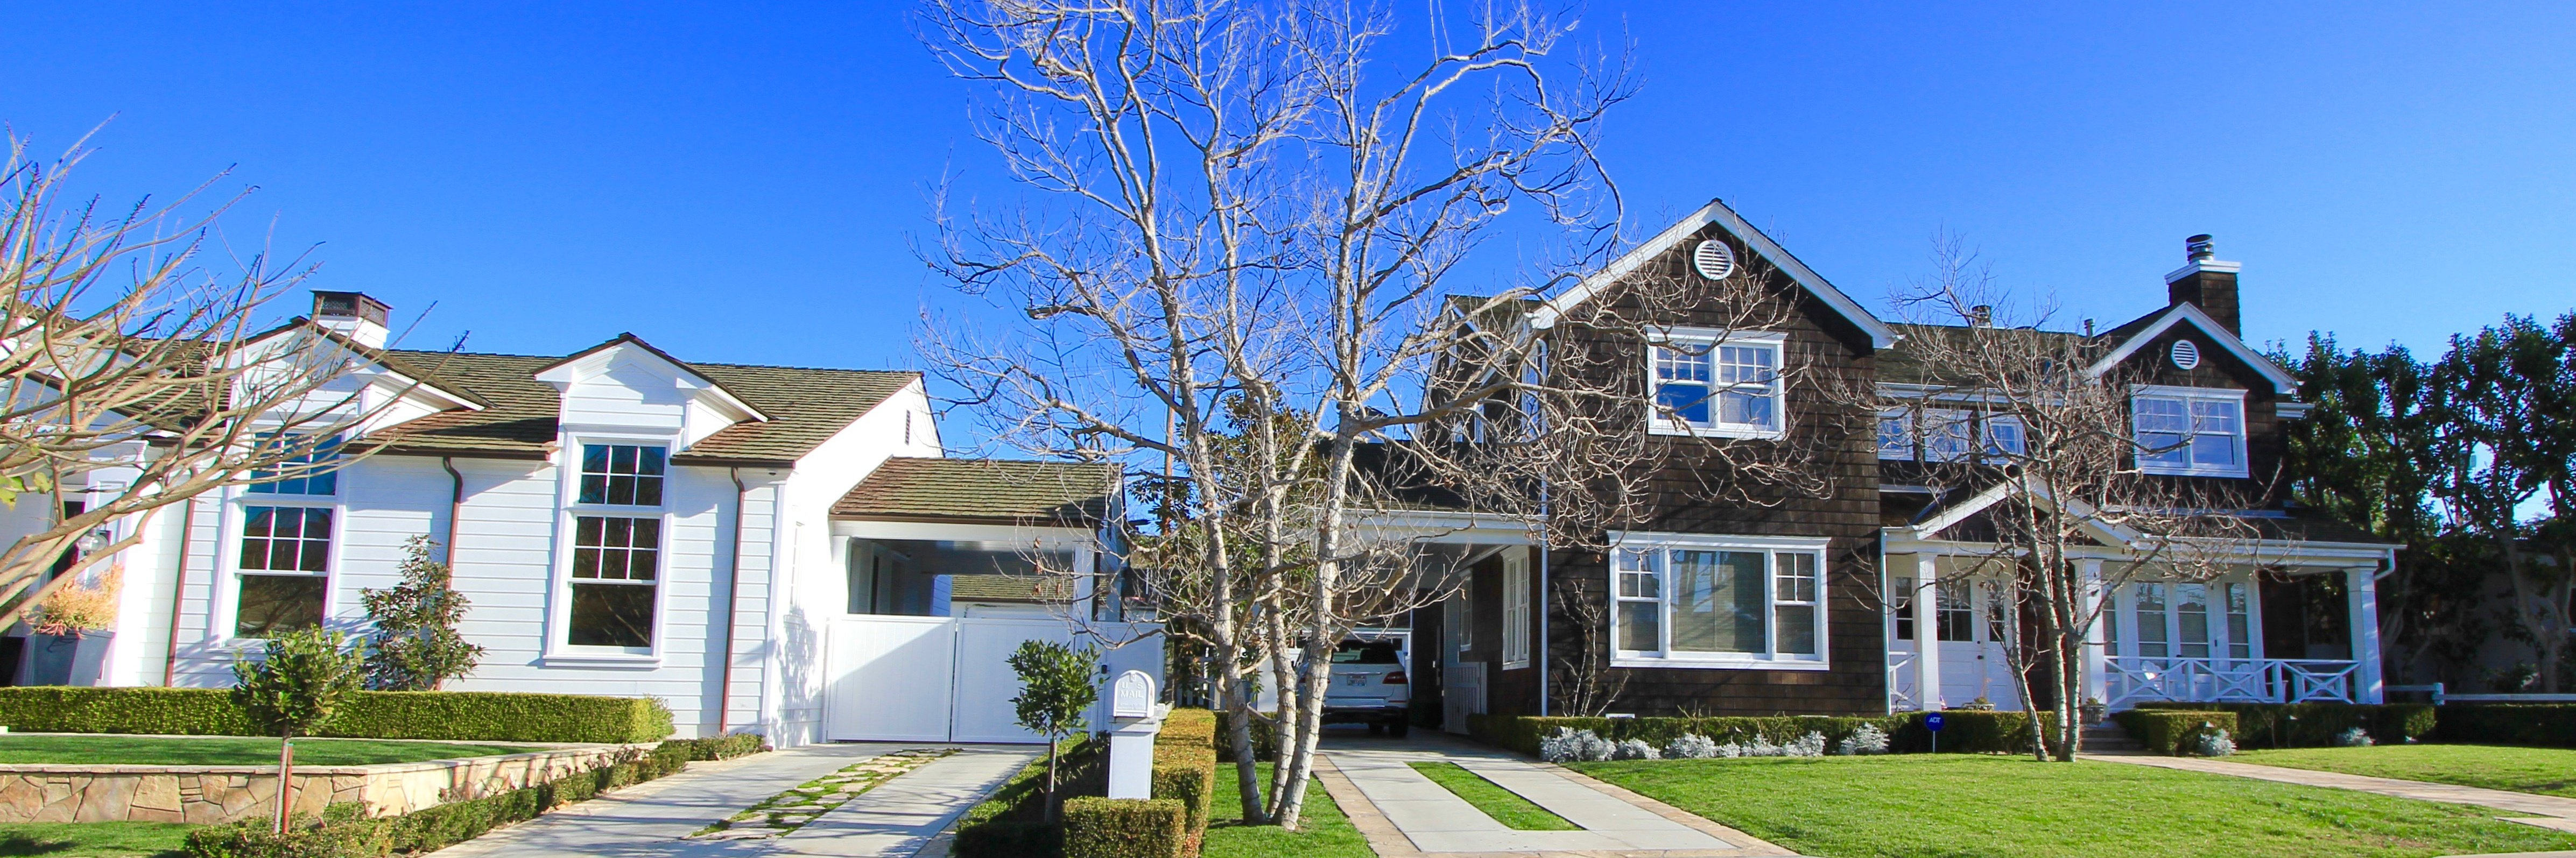 Cliffhaven is a housing community located in the city of Newport Beach, CA